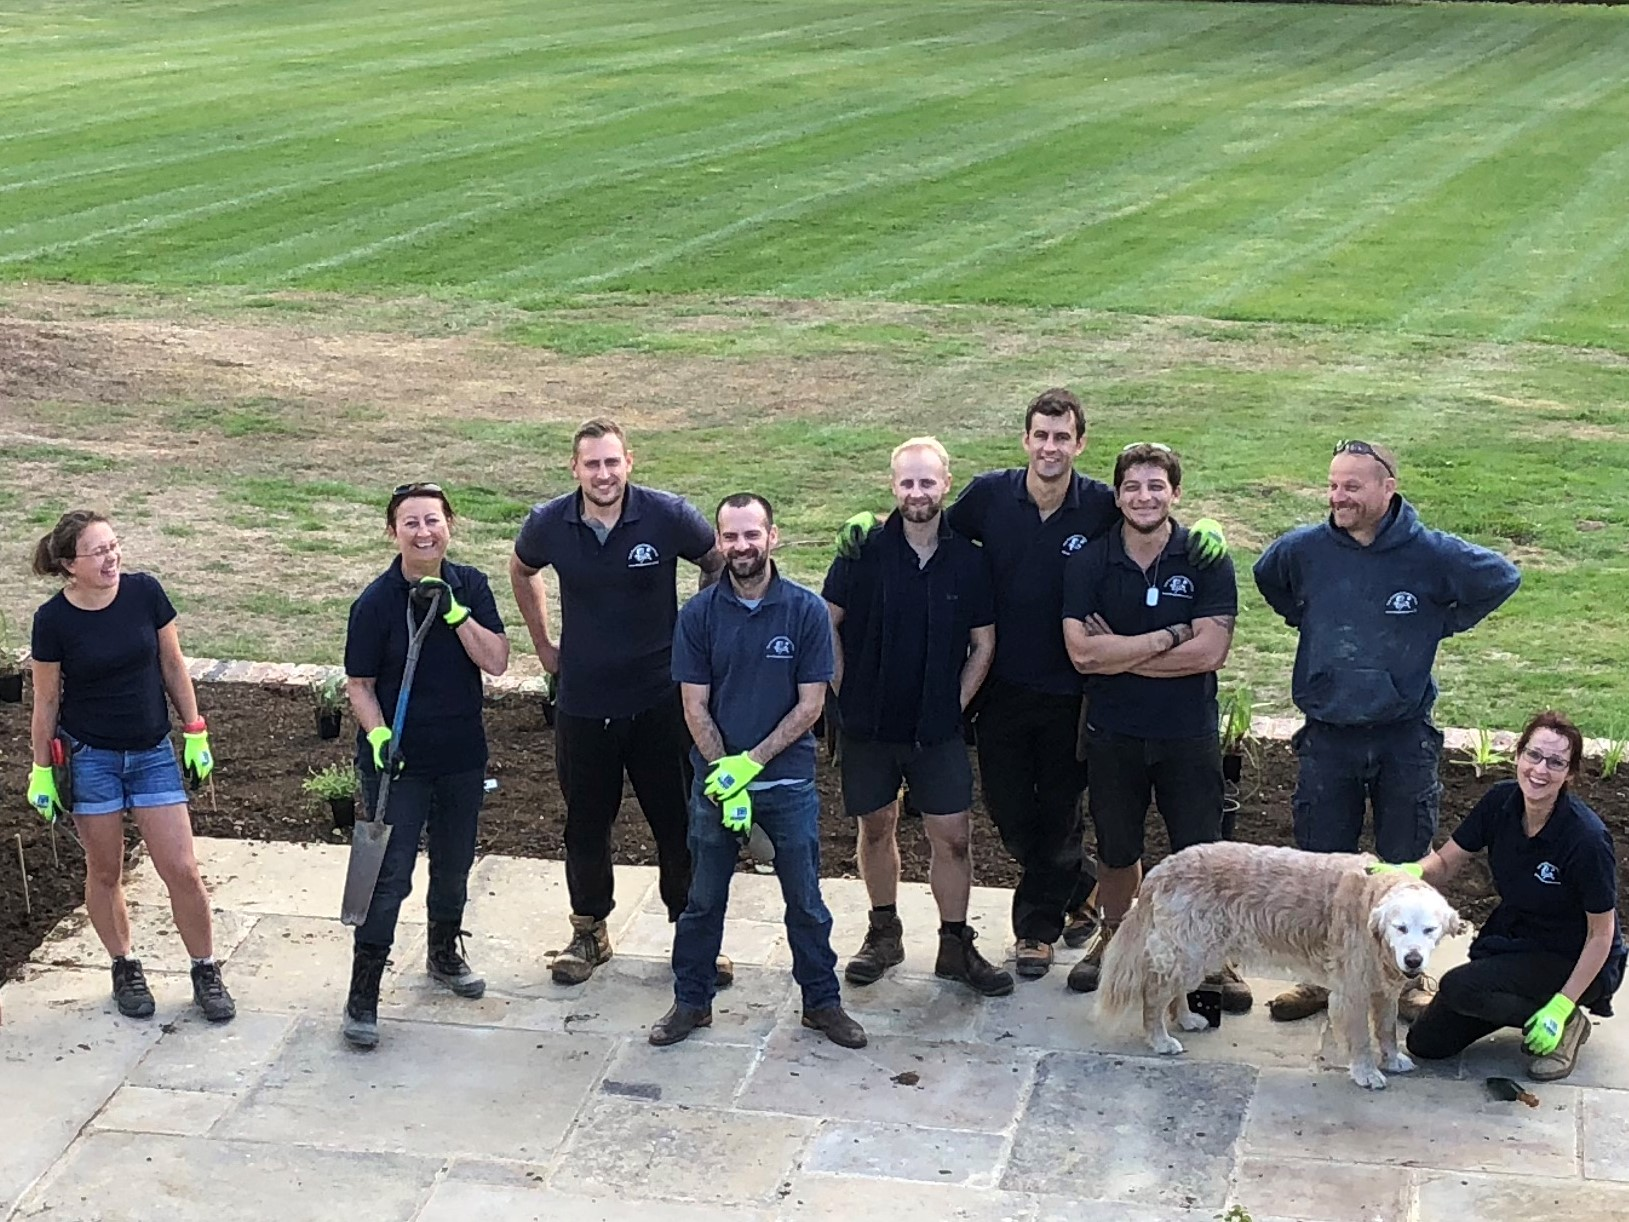 Garden Company team members (and client's dog)